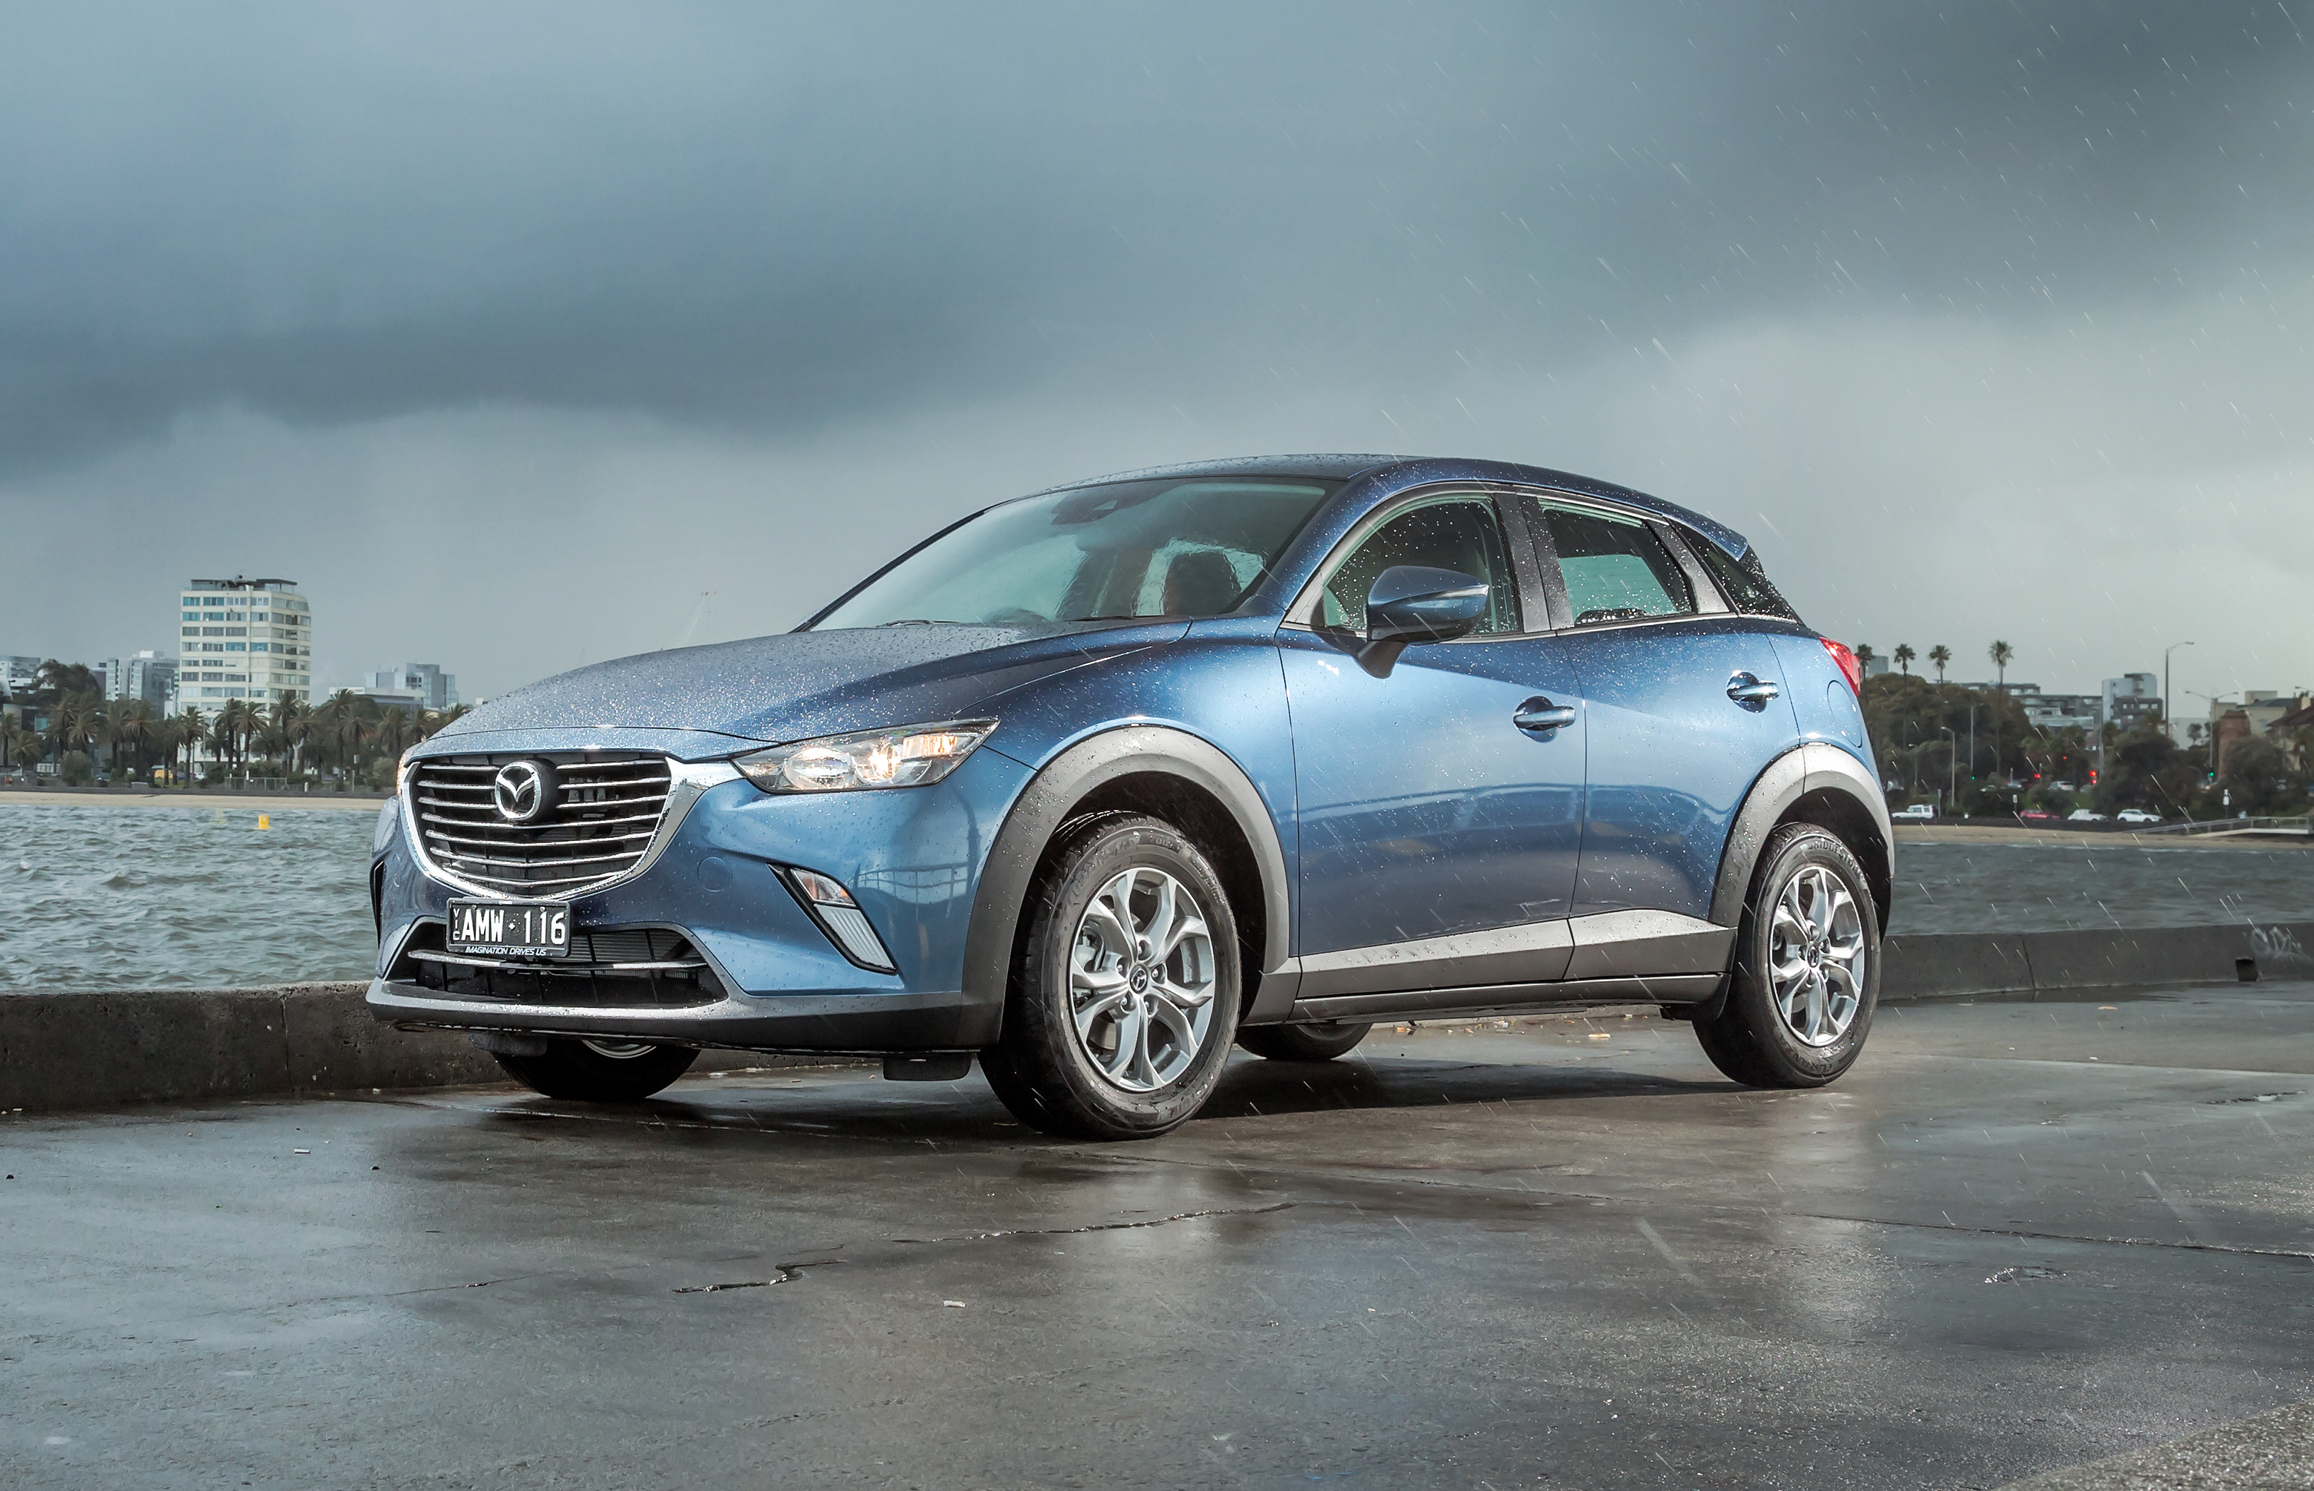 2017 mazda cx 3 pricing and specs photos caradvice. Black Bedroom Furniture Sets. Home Design Ideas